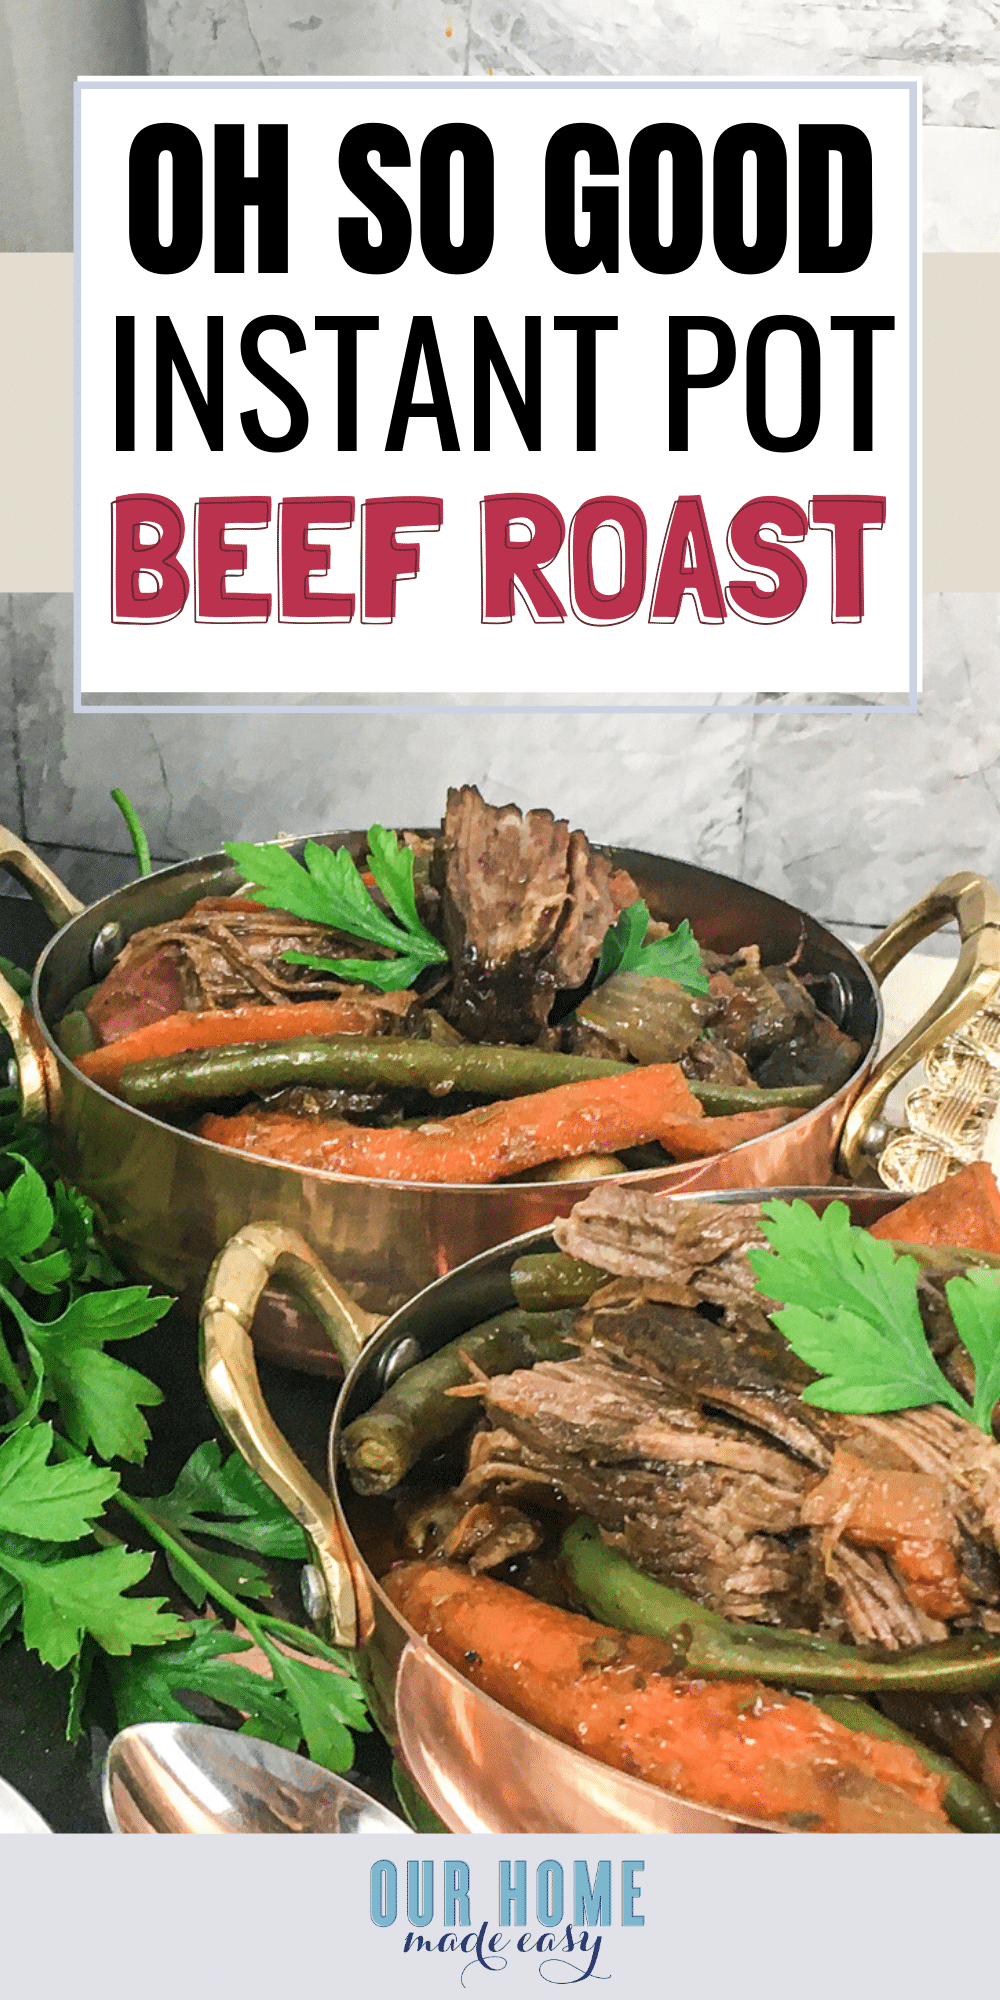 This instant pot beef roast will make a family favorite dinner in only an hour! It's perfect for busy nights when you crave comfort food.